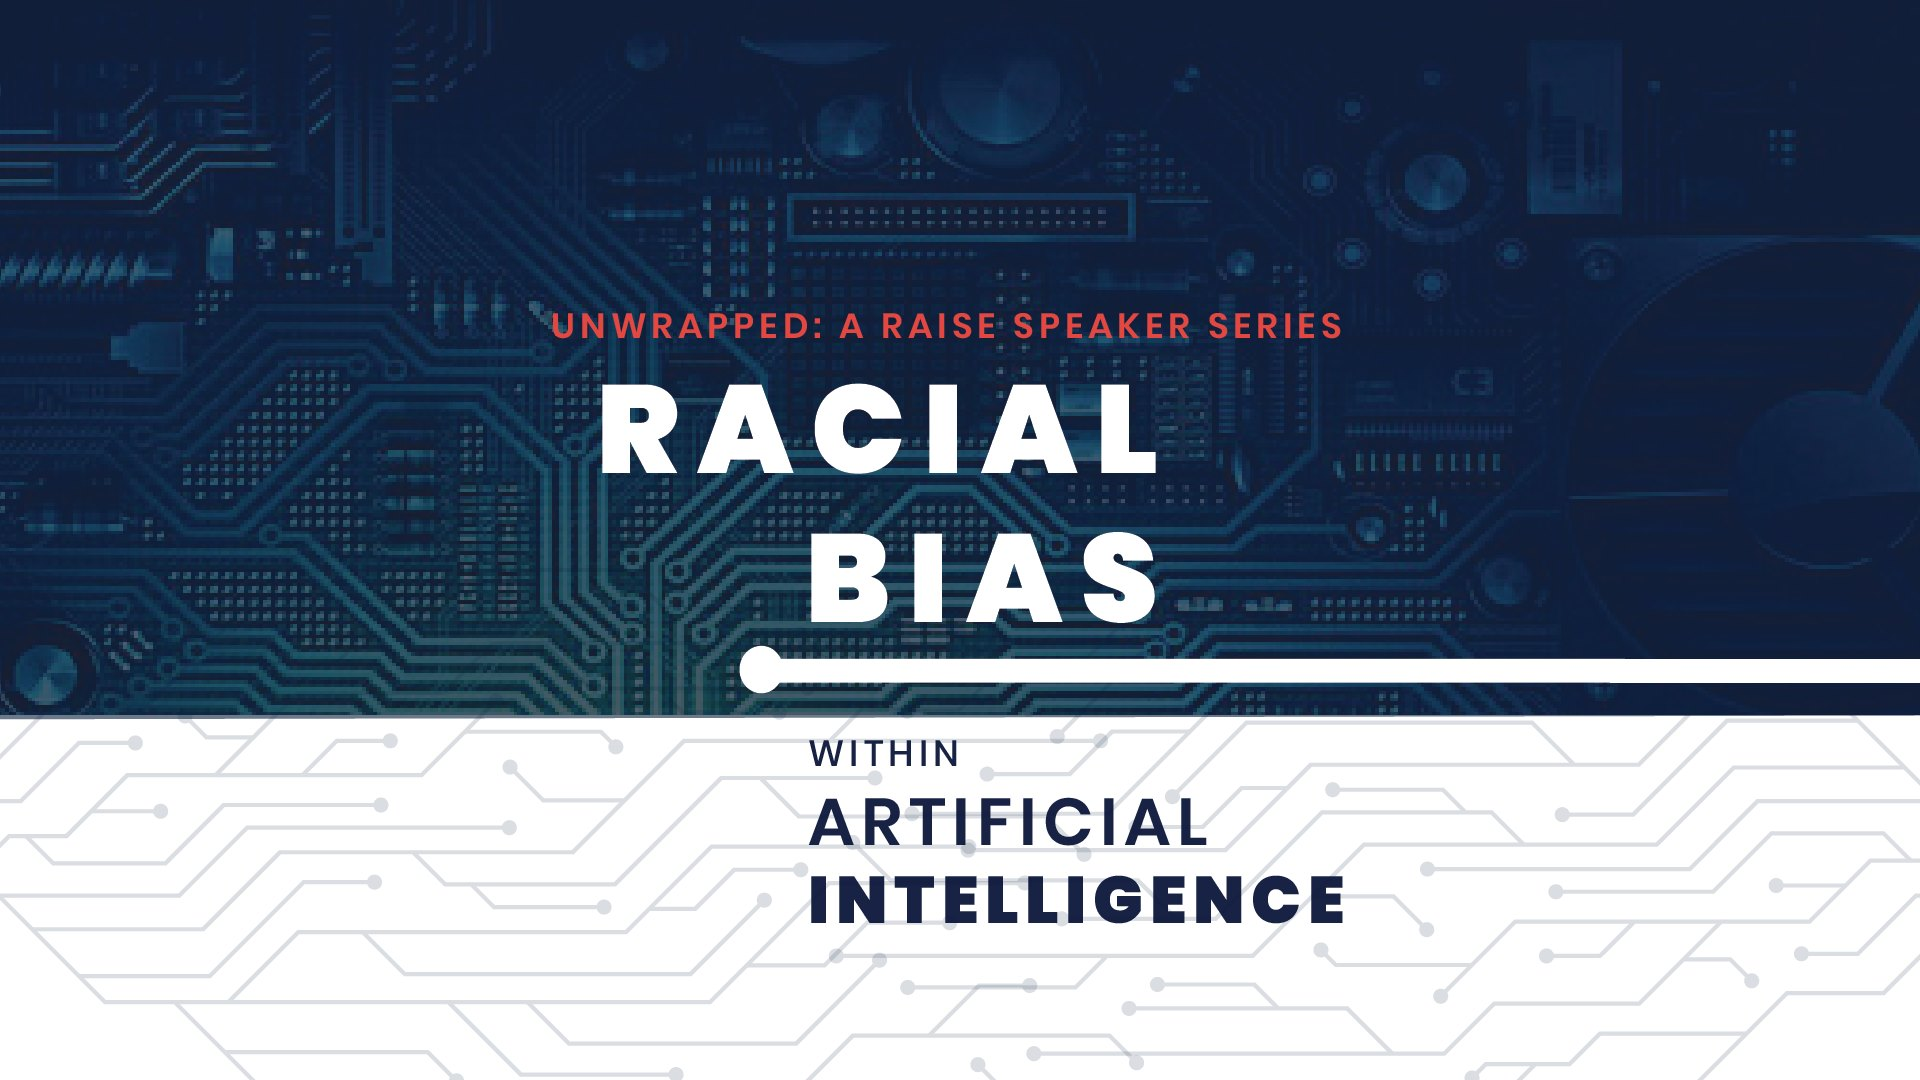 Unwrapped: Racial Bias Within Artificial Intelligence